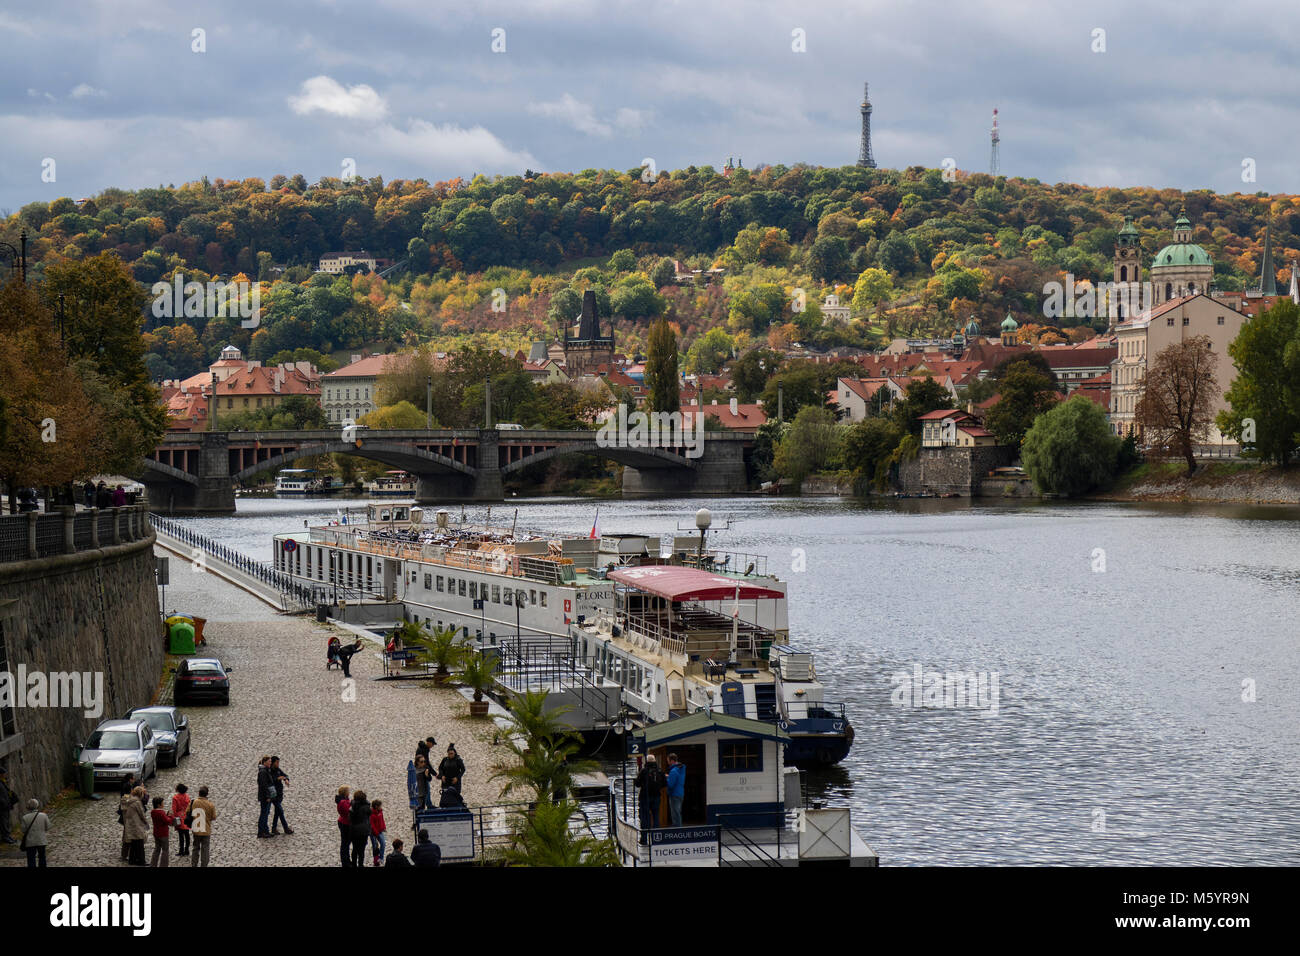 Prague, Czech Republic - October 8, 2017: Launches and tourists on the Moldau river in Prague in autumn with the - Stock Image